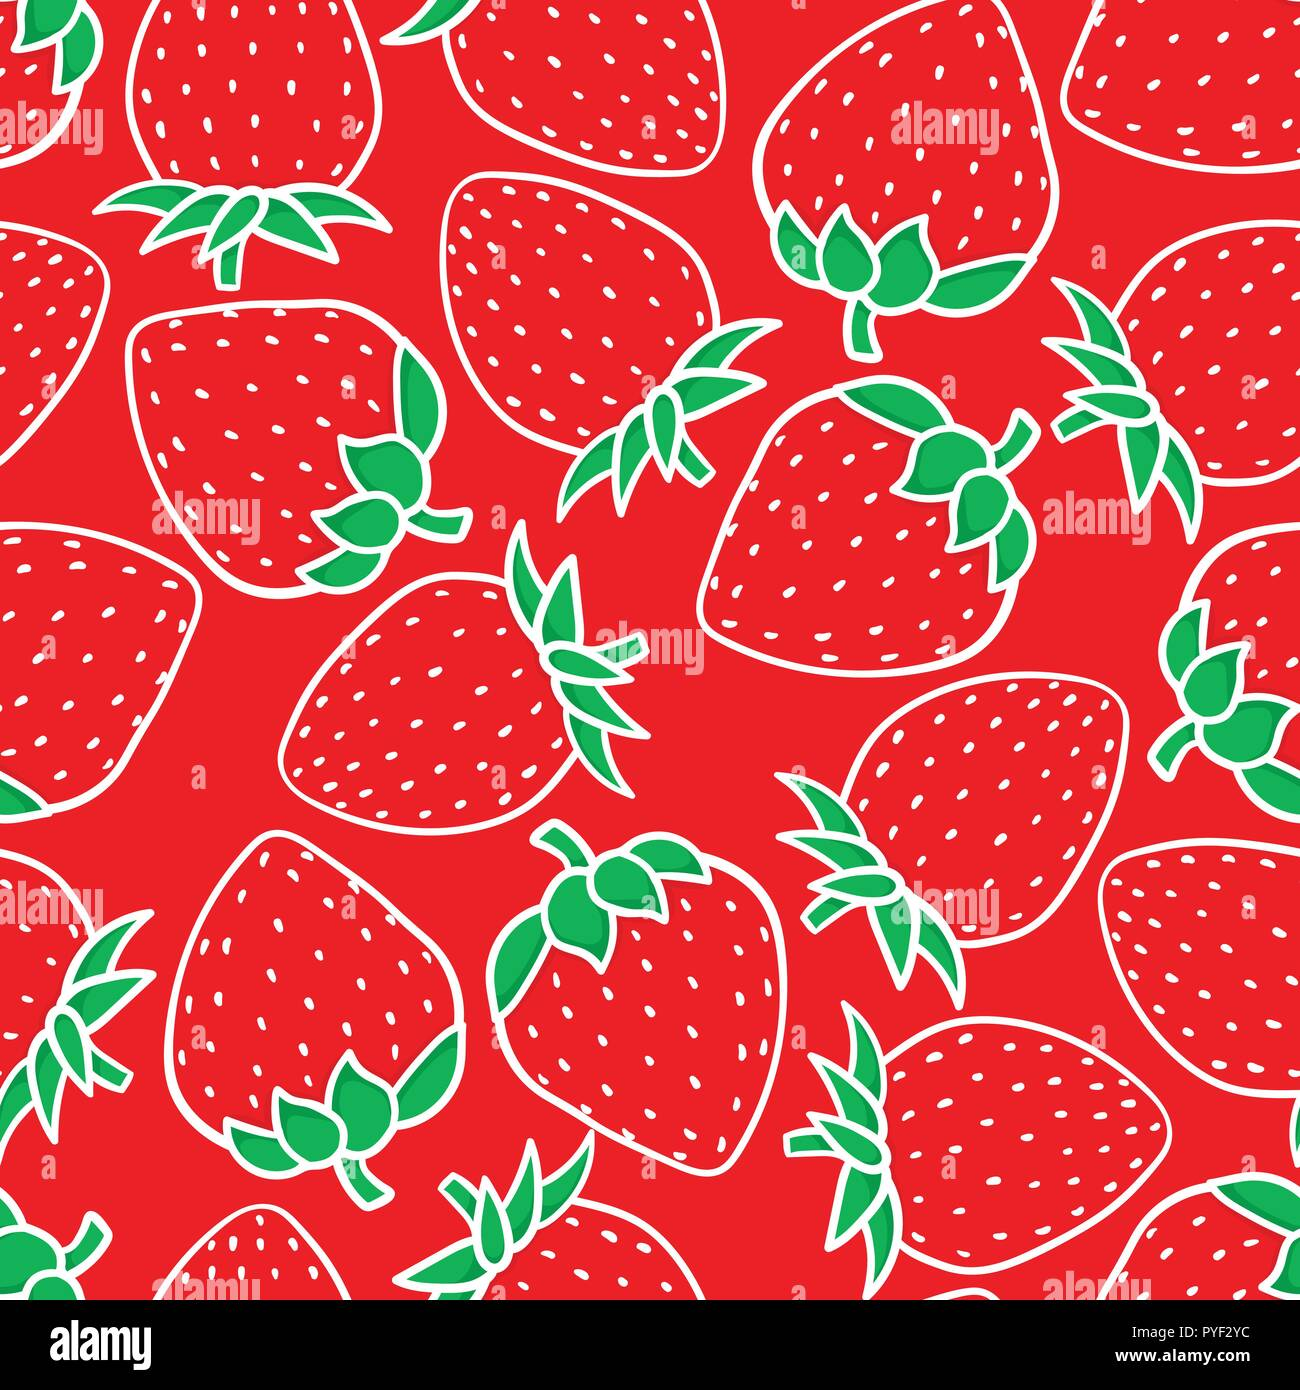 Hand Drawing Strawberry Fashion Sketch Seamless Pattern Isolated On Red Background Vector Illustration Holiday Merry Christmas Sweet Print Kids Design Texture Stock Vector Image Art Alamy